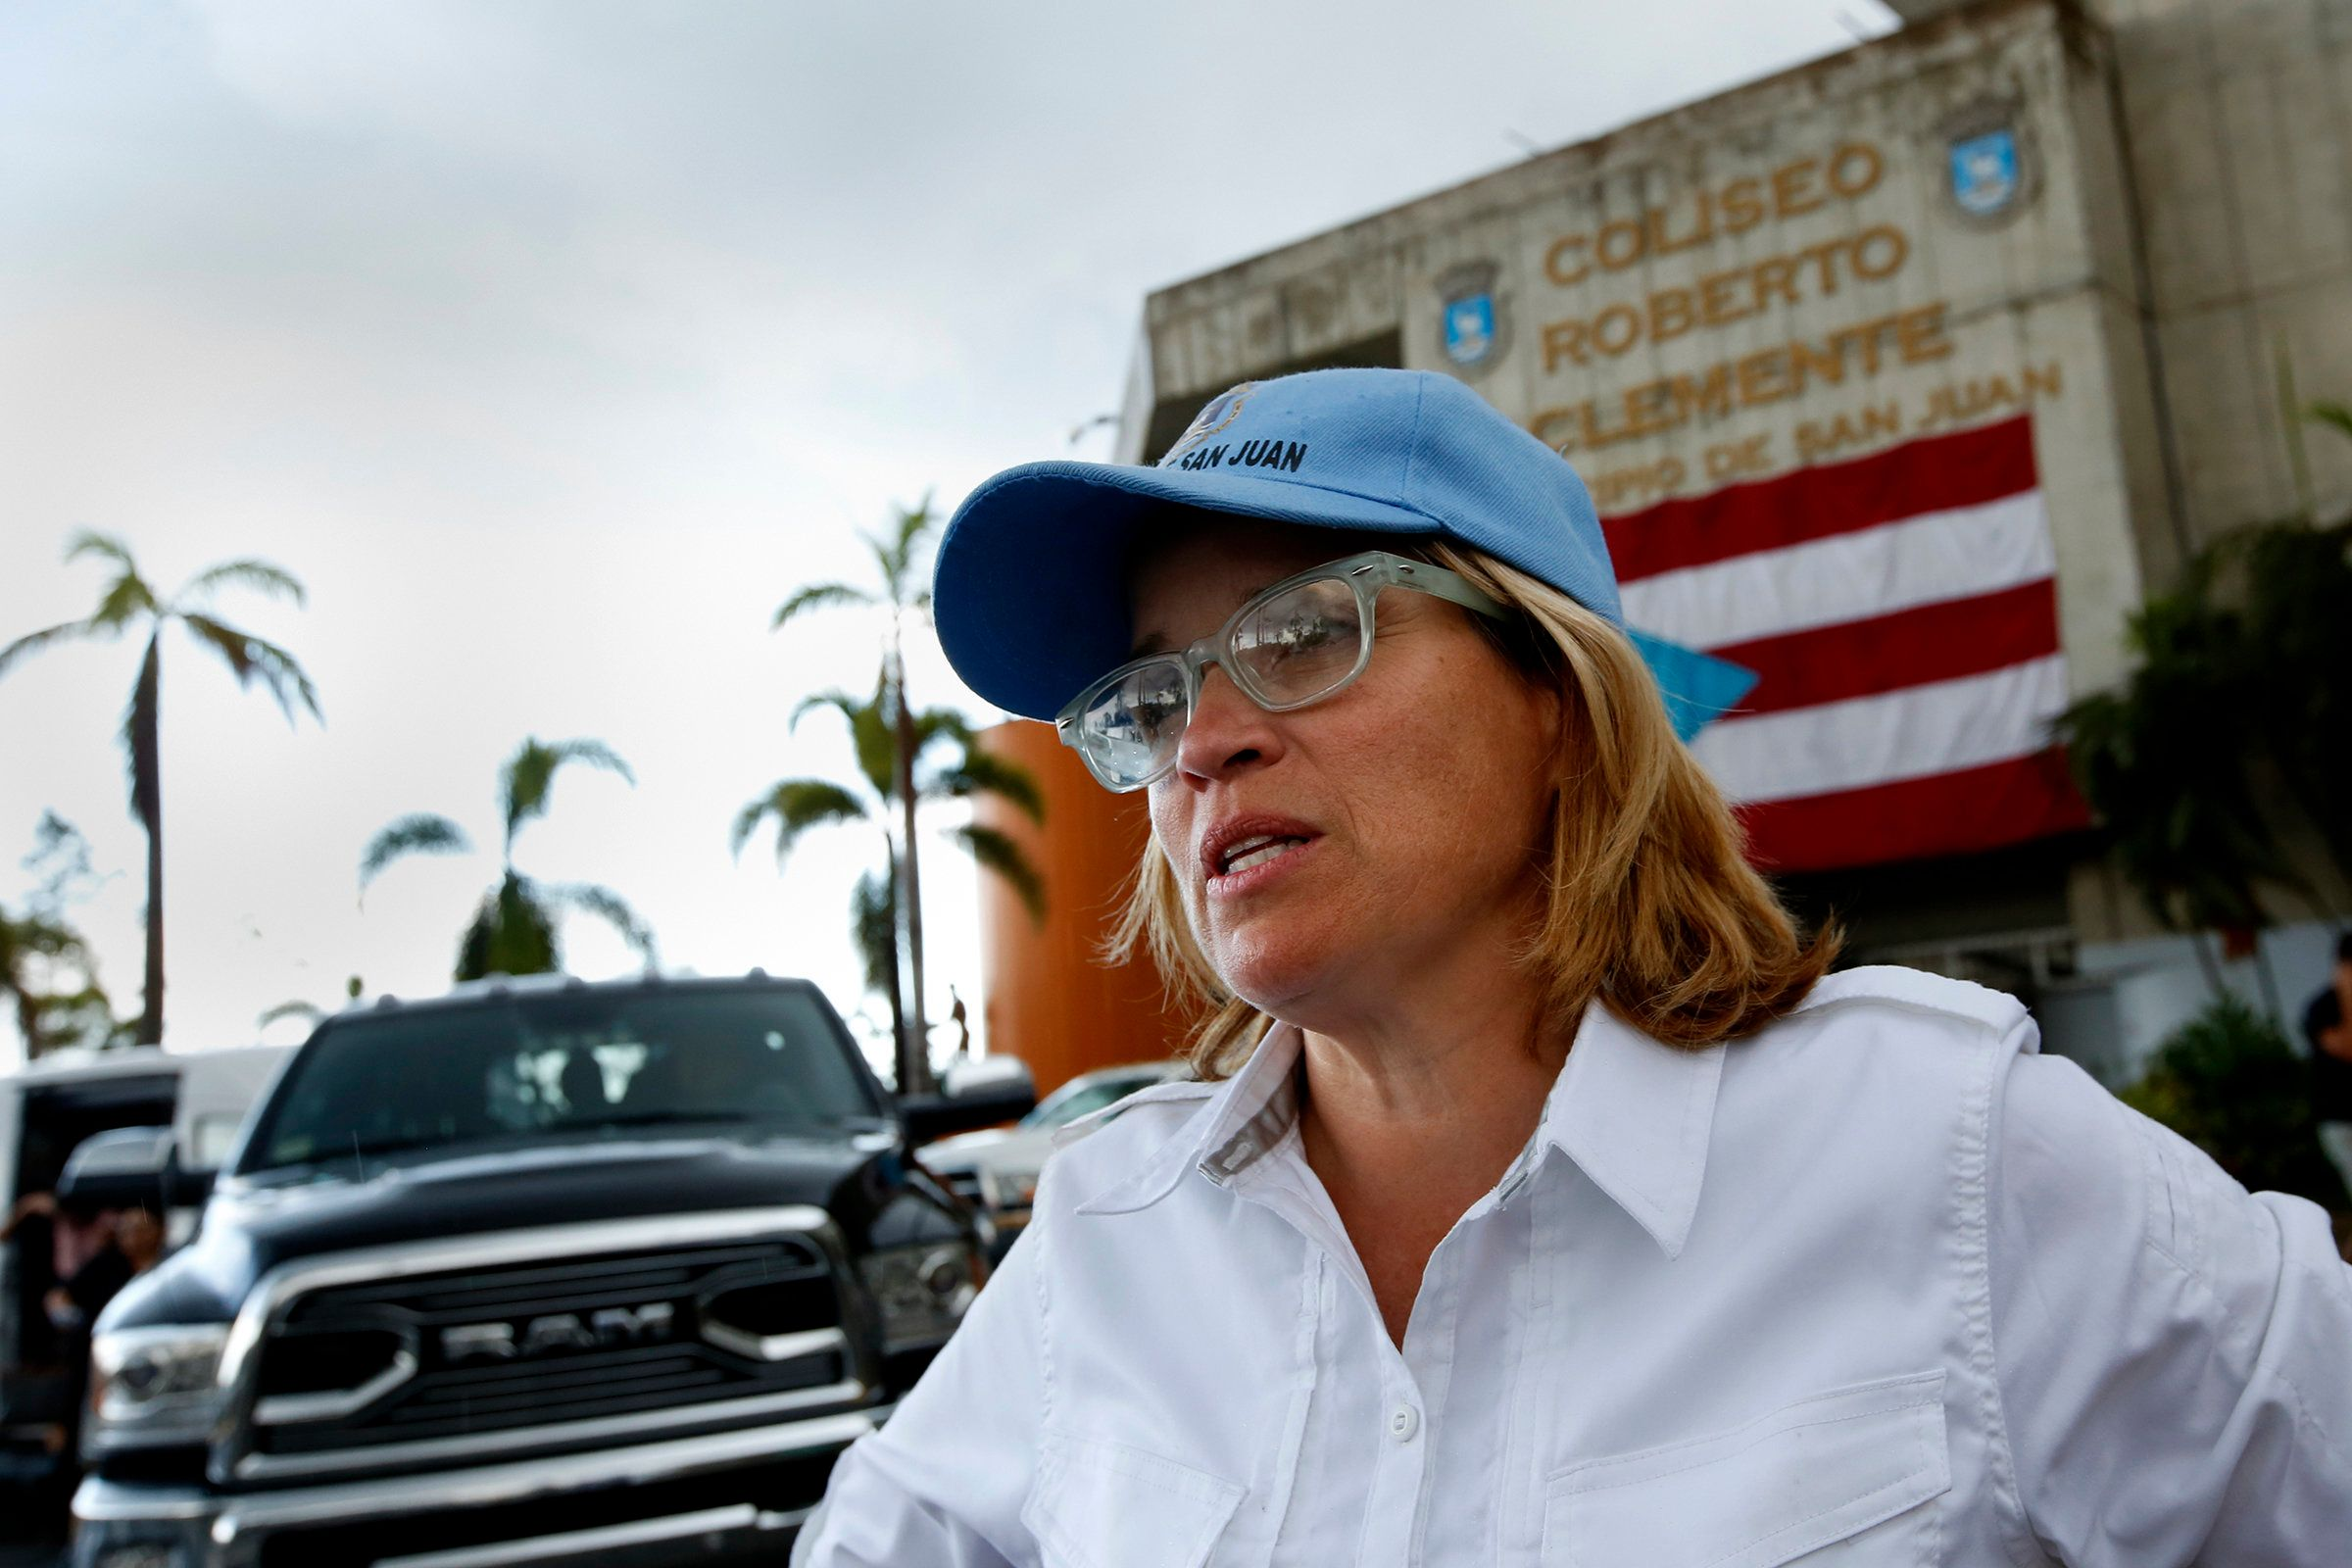 San Juan Mayor Carmen Yulín Cruz outside the Coliseo Roberto Clemente, a stadium that's been functioning as the c